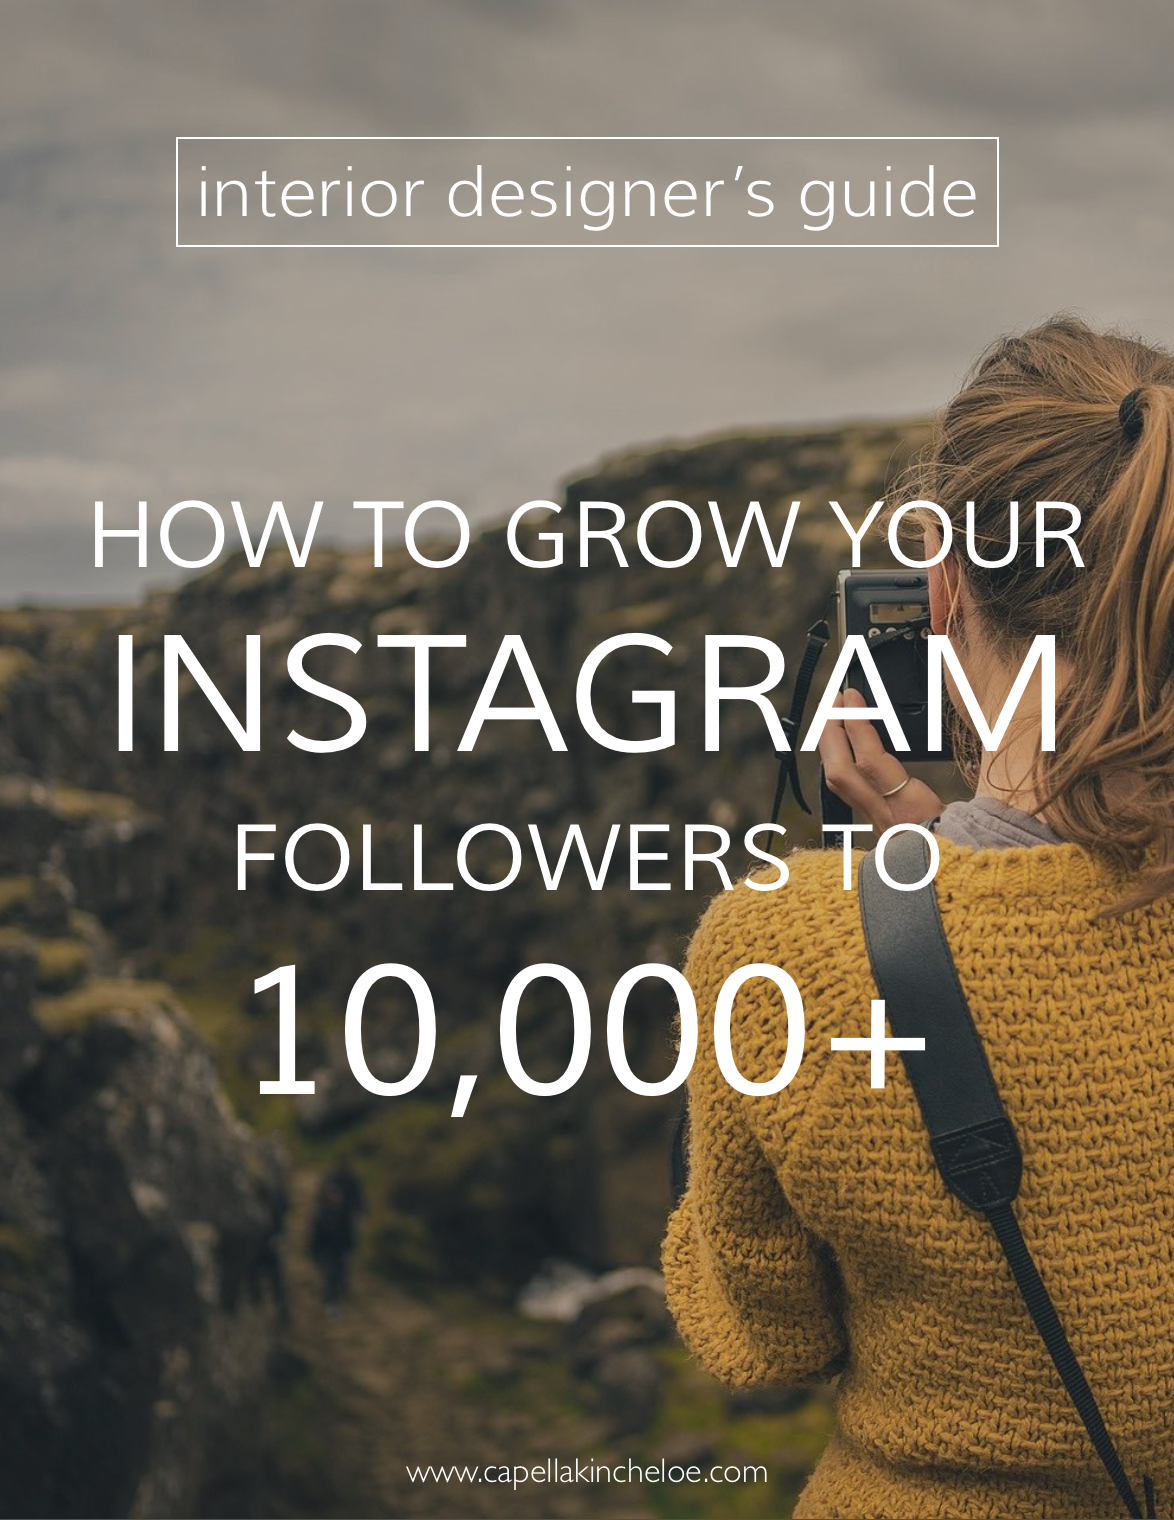 learn how to grow your instagram followers to grow your interior design business from an interior designer who has grown her followers to over 10,000 in just over a year. You can do this!